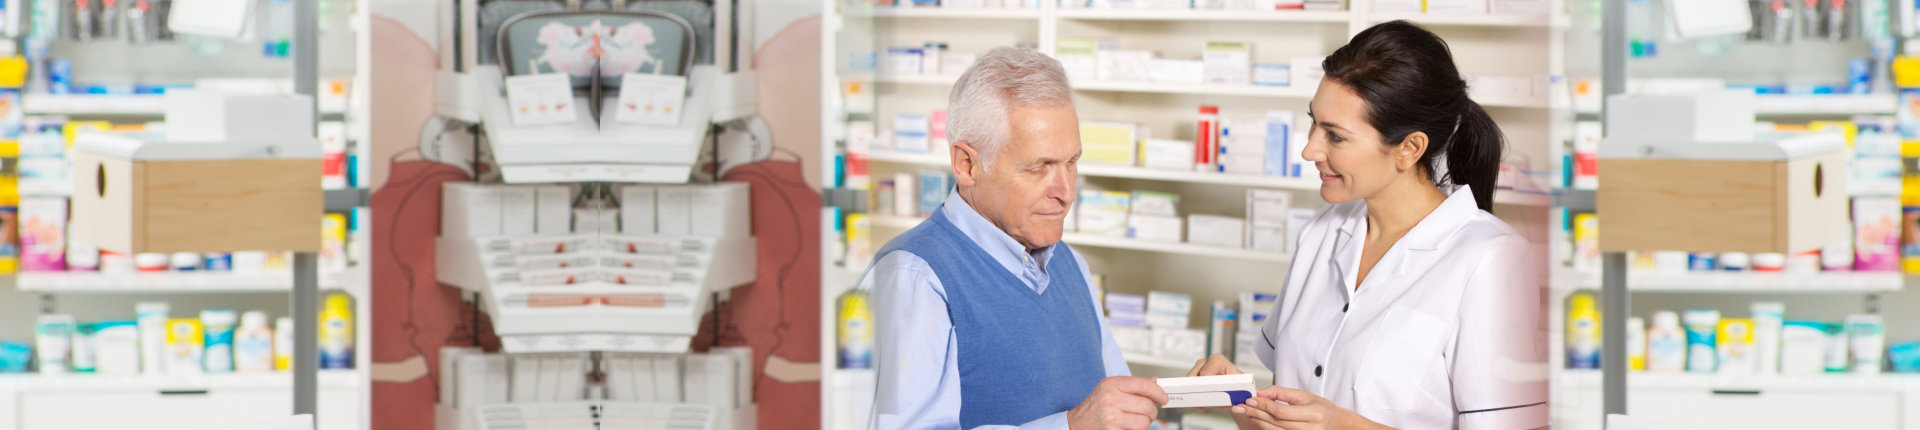 customer asking for assistance with the pharmacist